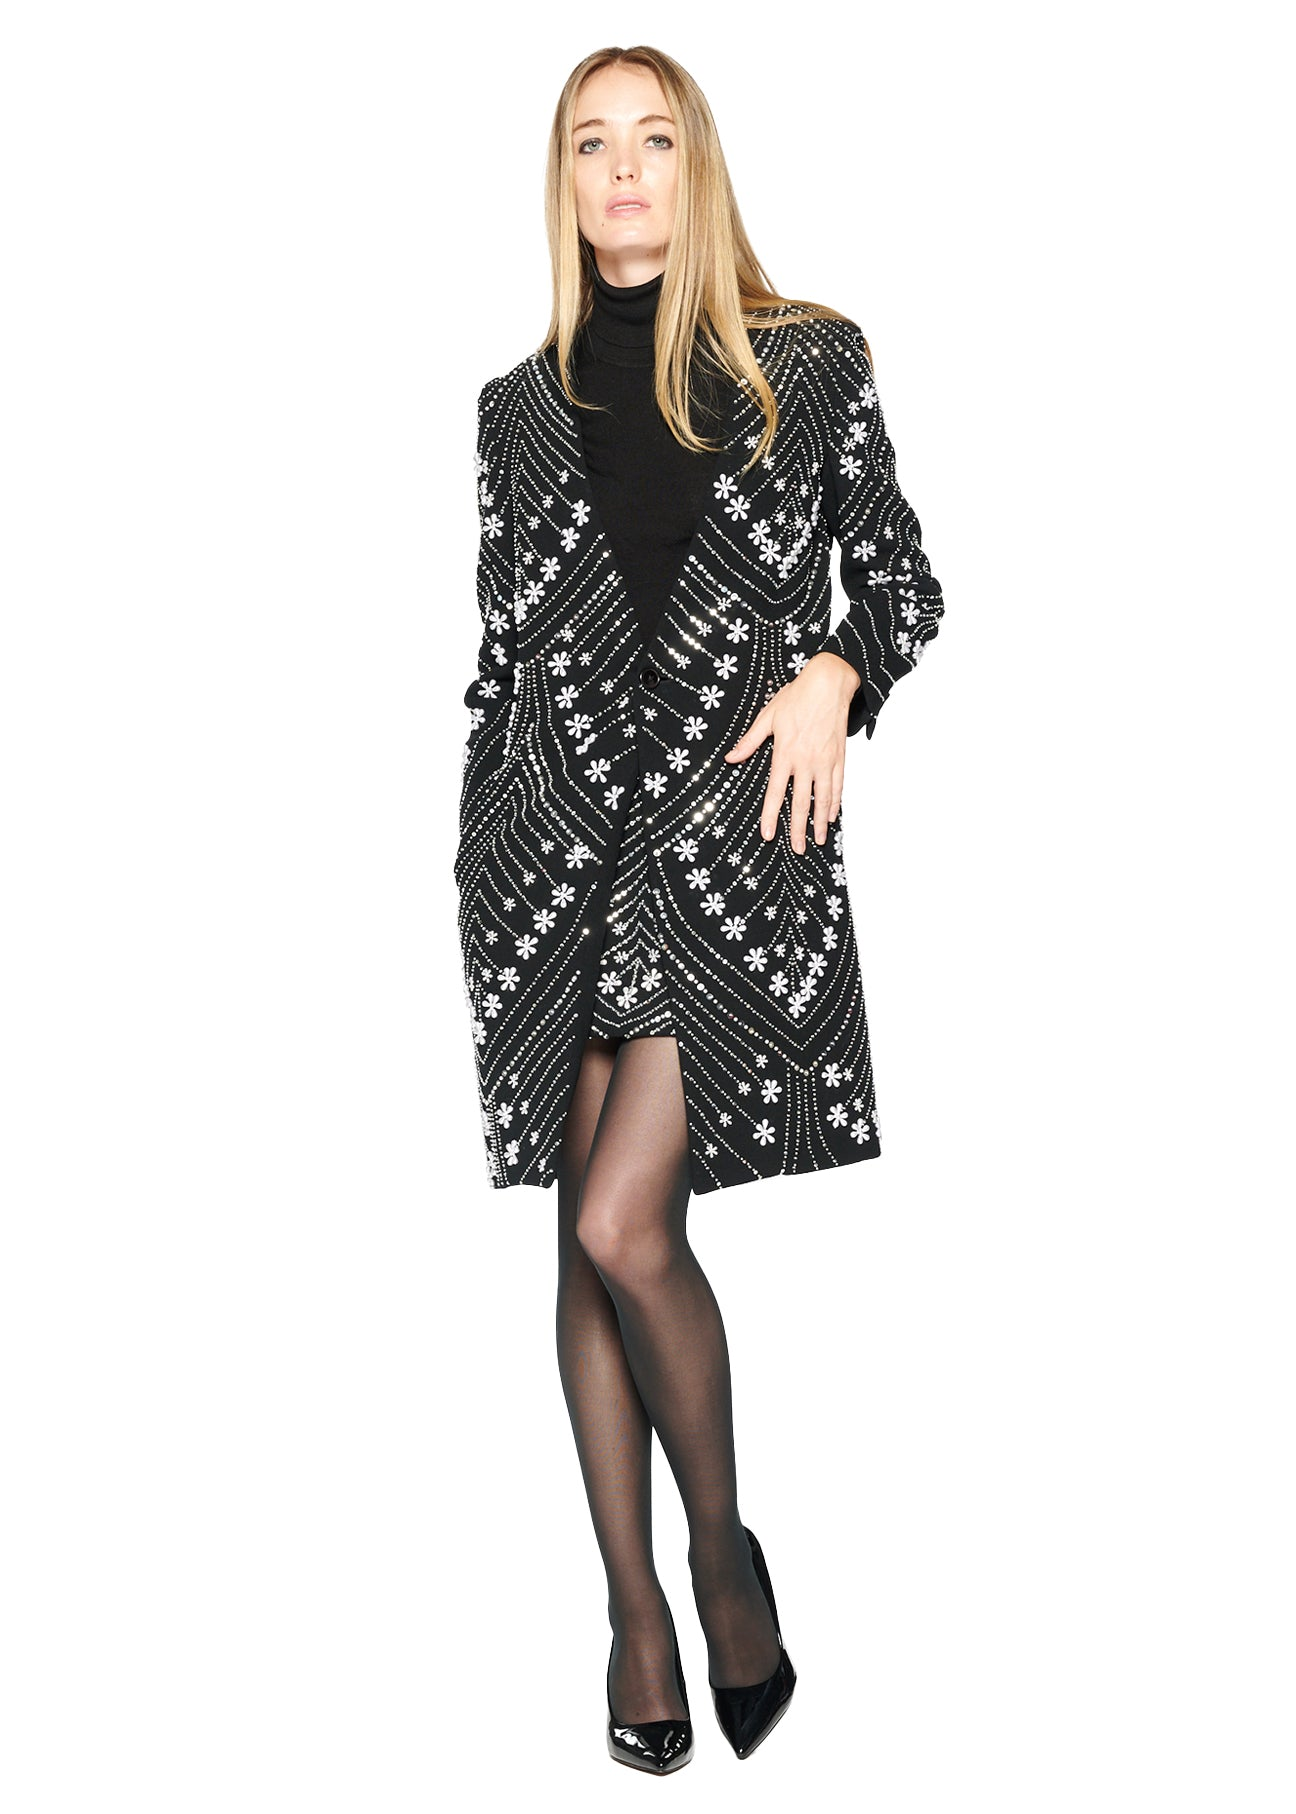 'CHEVRON PEARLS' V-NECK COAT - Women's Jackets & Coats - Libertine